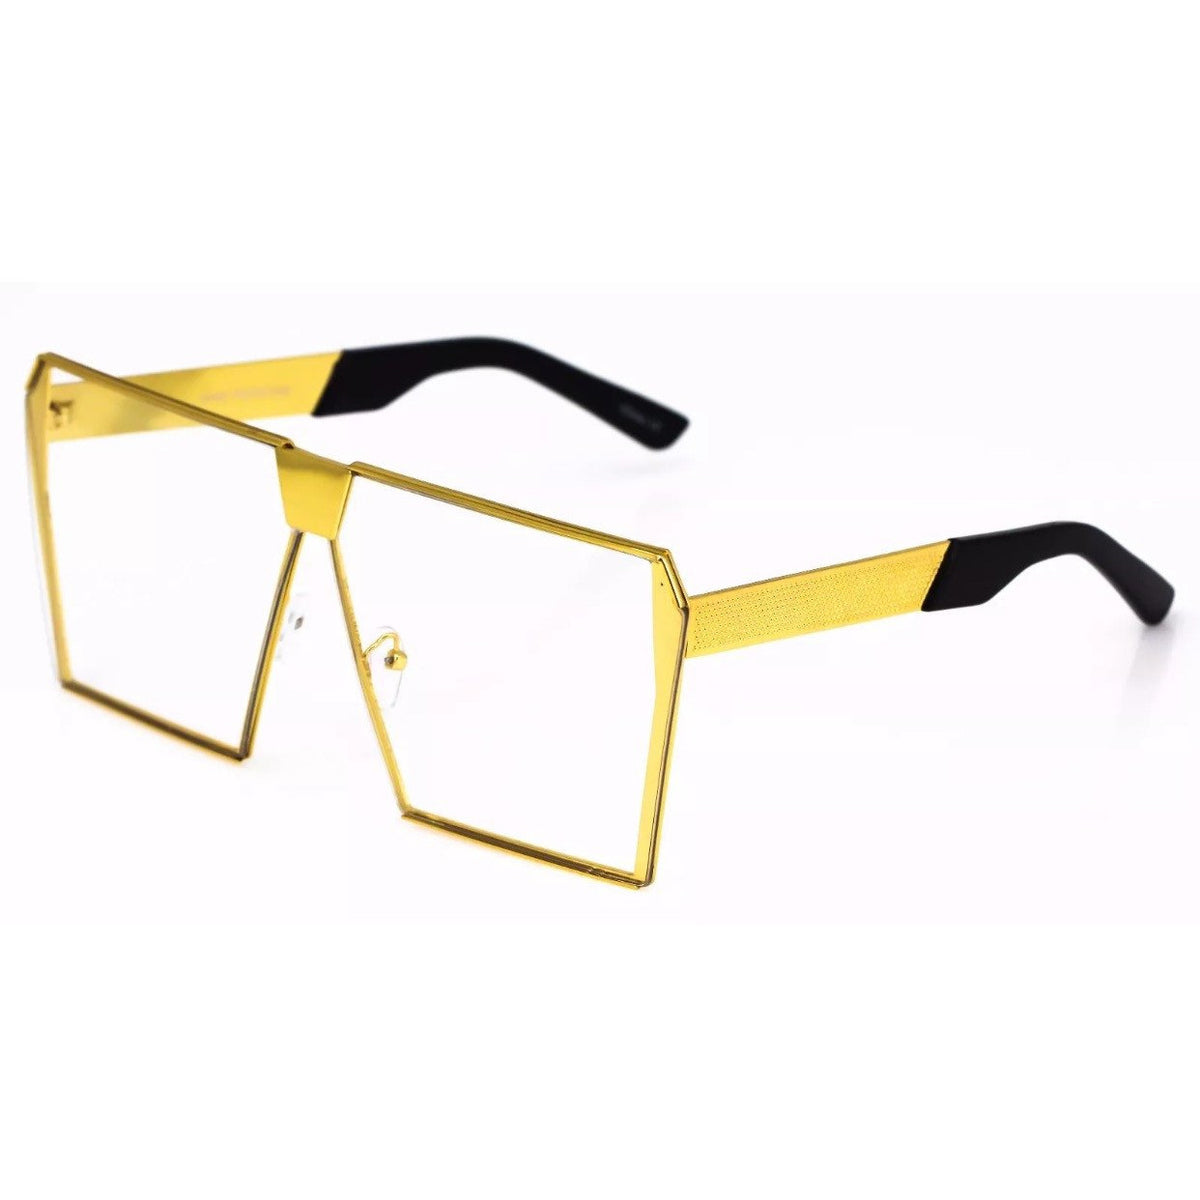 Flat Gold Tone Clear Lens Shield Eyeglass Sunglasses